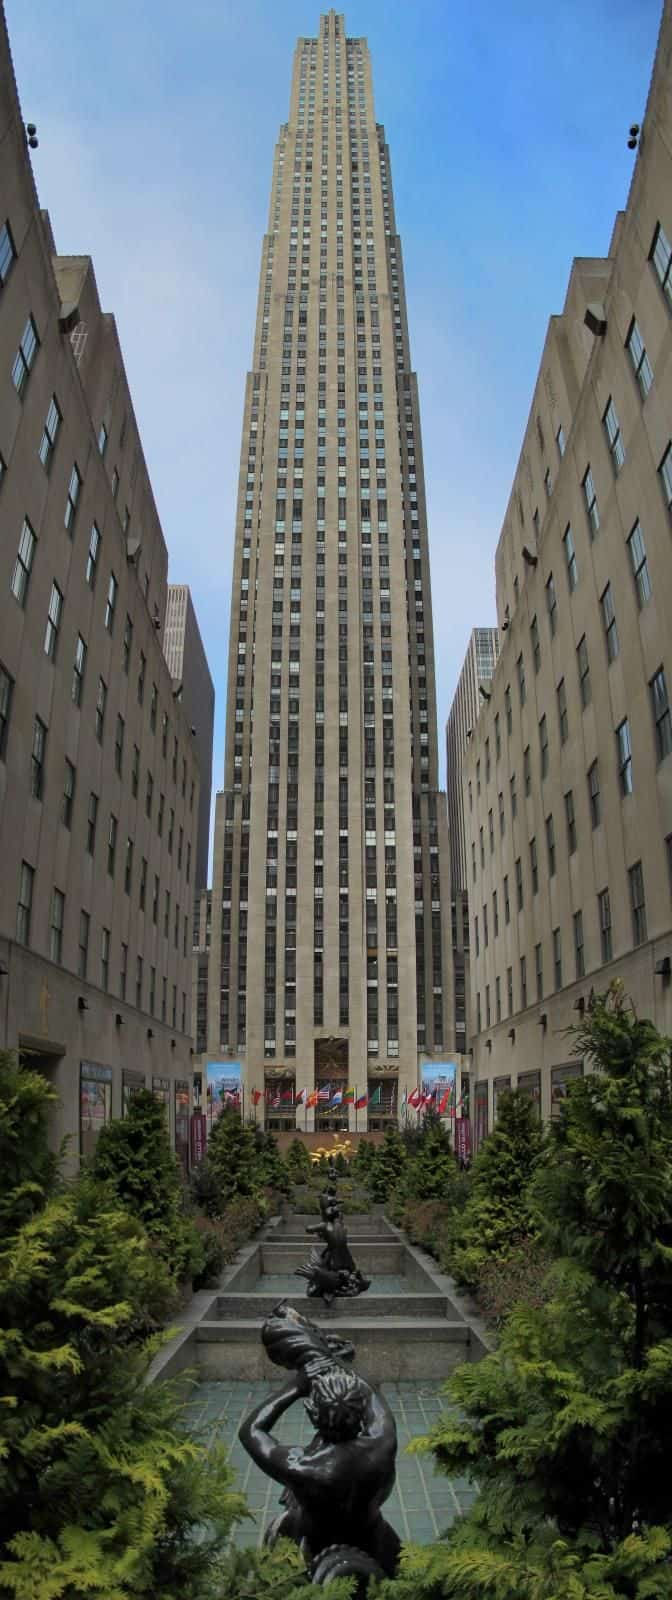 30 Famous New York Landmarks That You Have To See